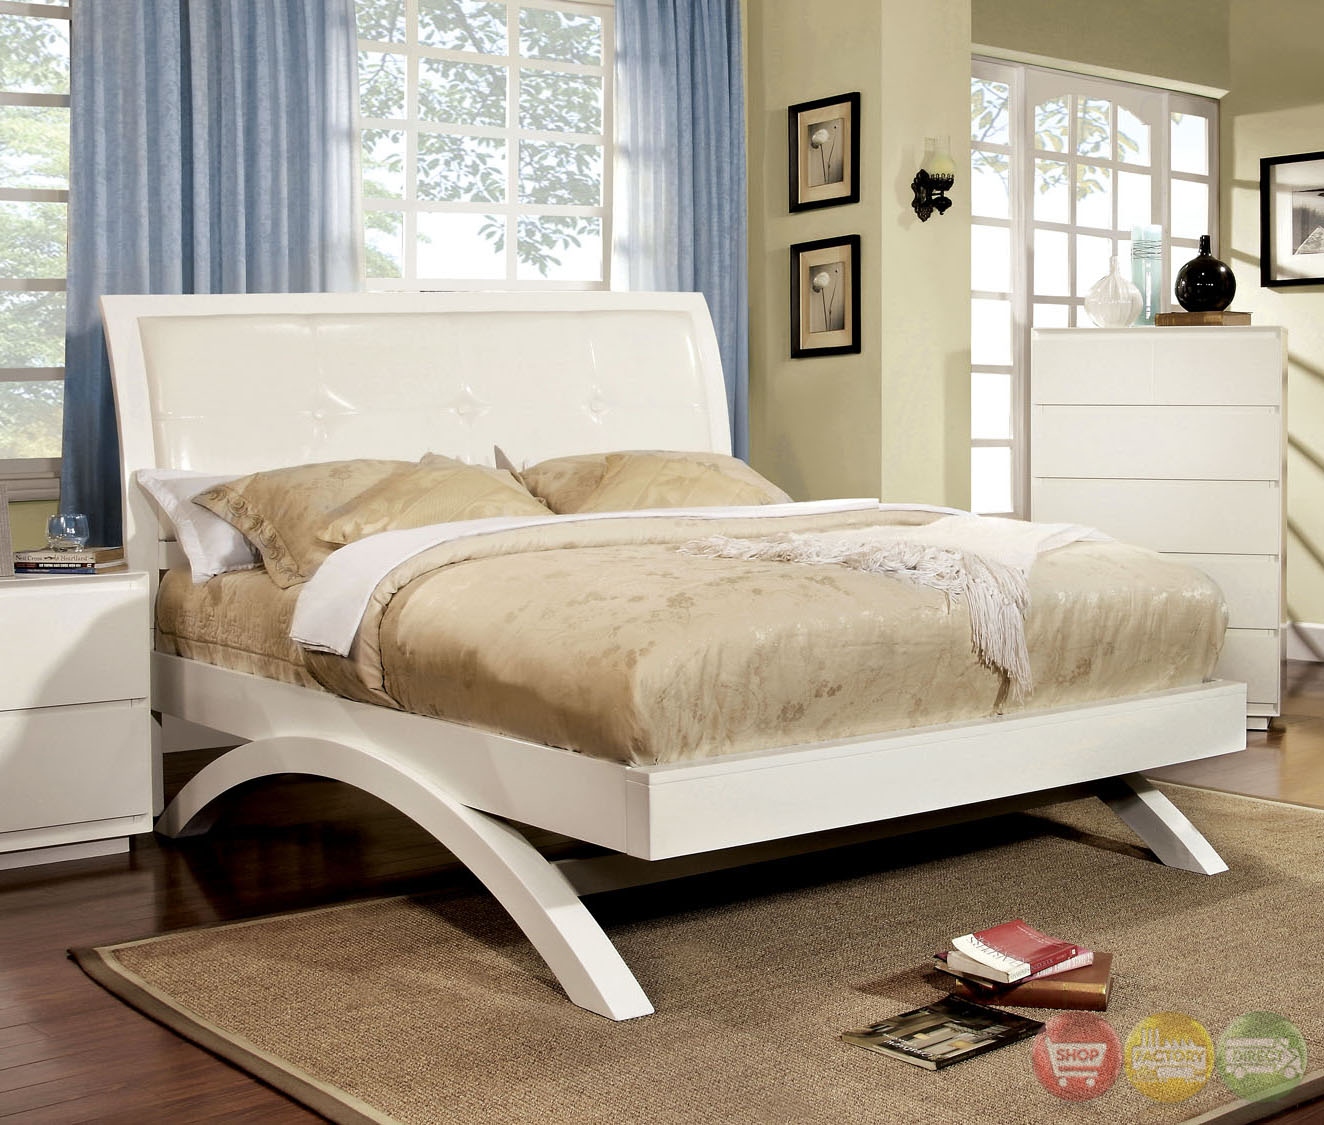 Delano Contemporary White Platform Bedroom Set With Padded Leatherette Headboard Cm7824wh